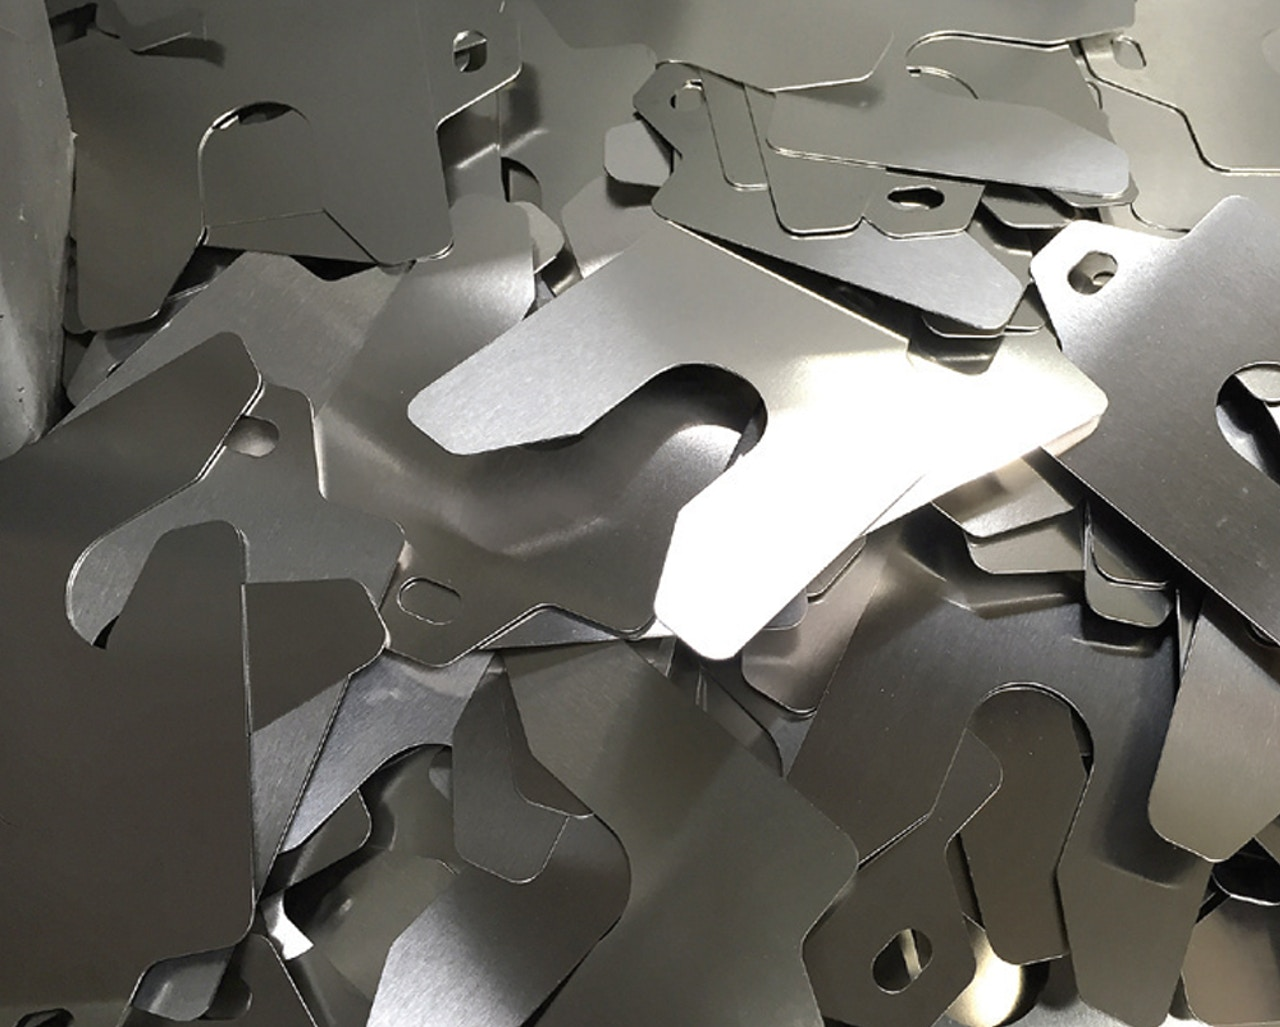 MW Components - industrial shims